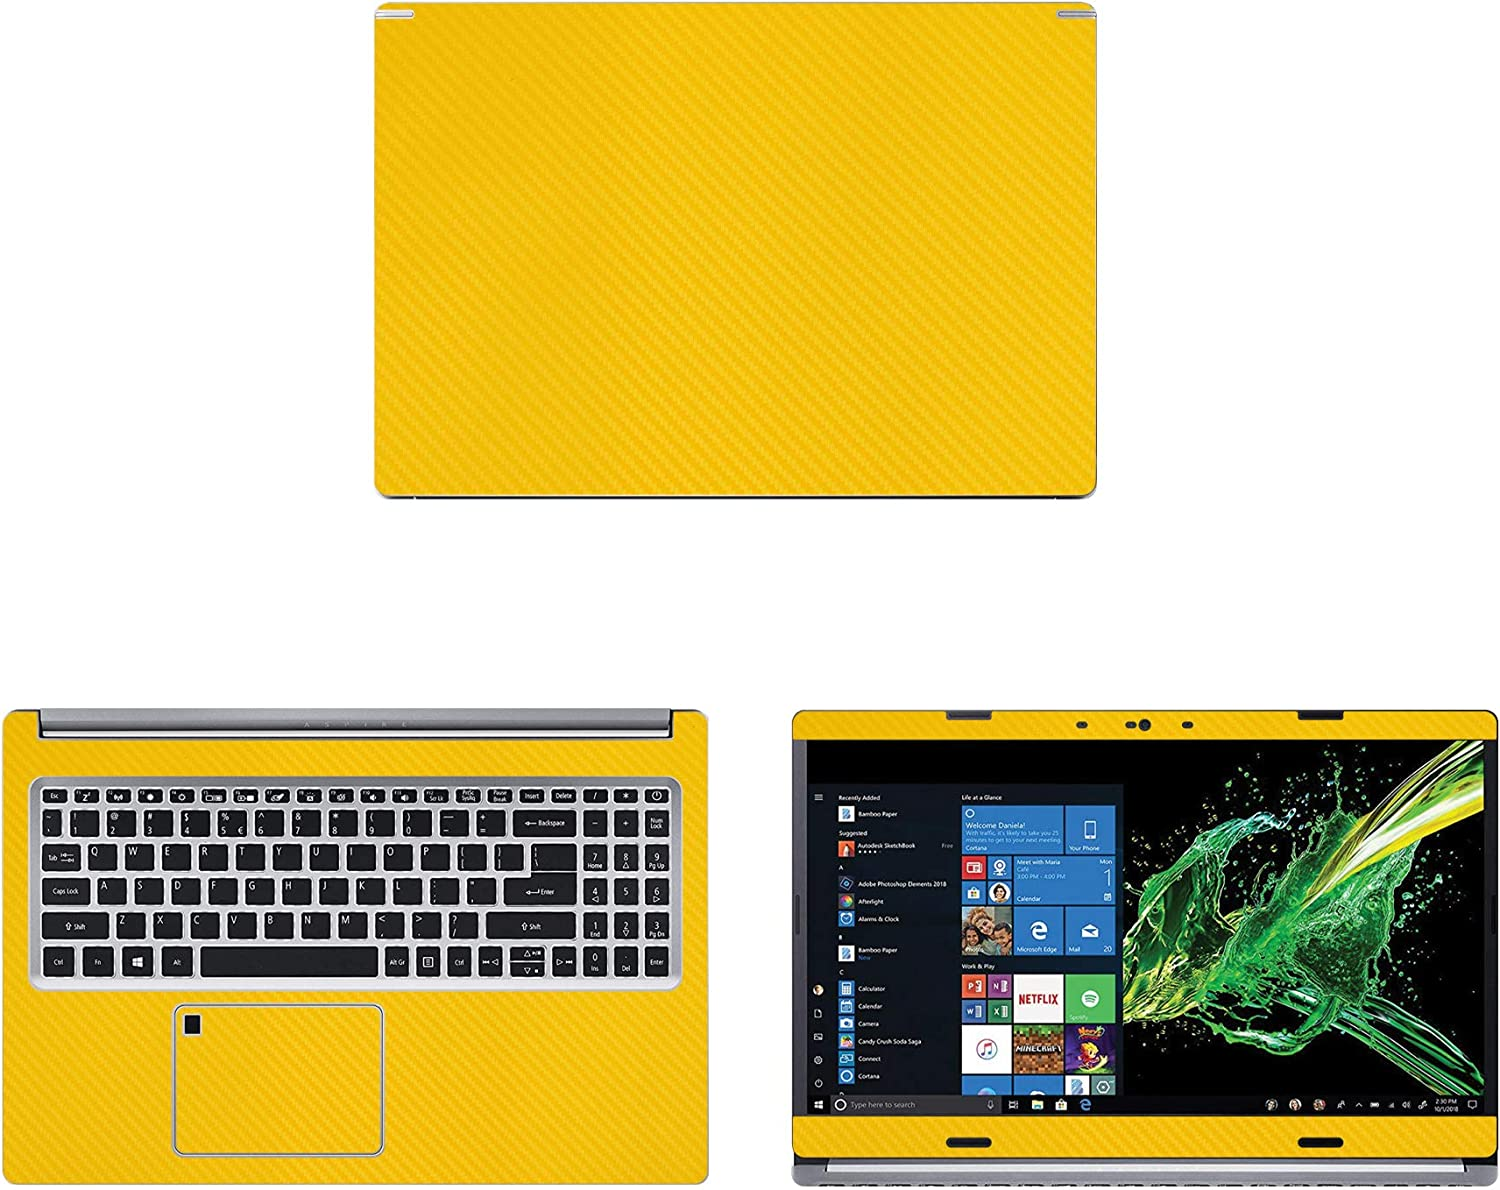 Decalrus - Protective Decal for Acer Aspire 5 A515-54-51DJ (15.6